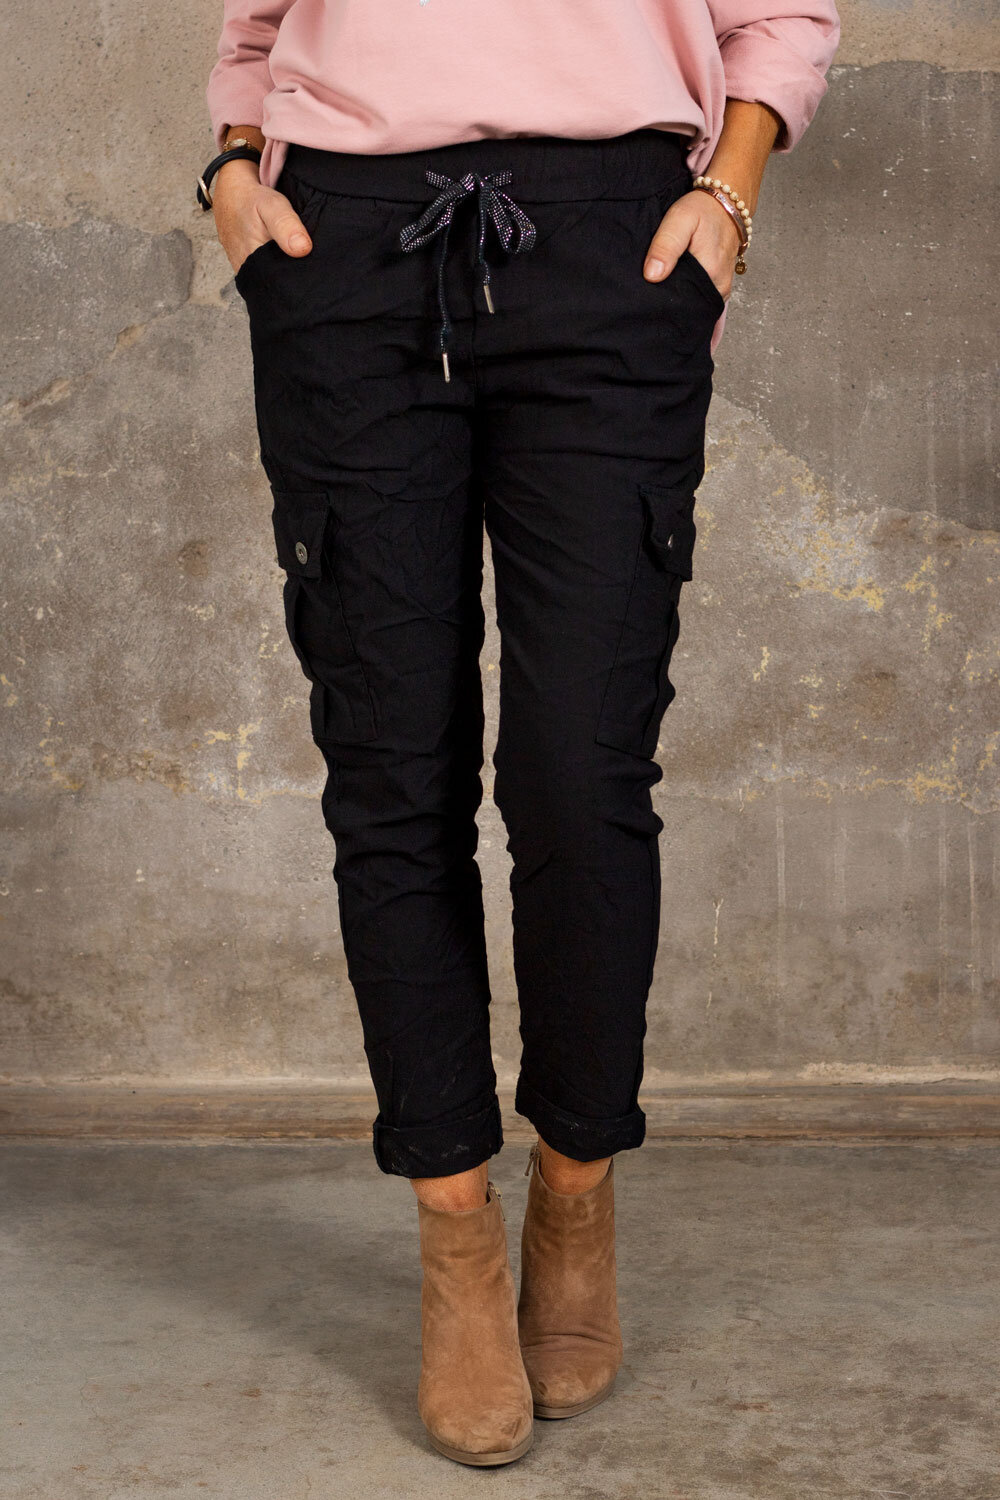 Stretchy Cargo Pants - Black